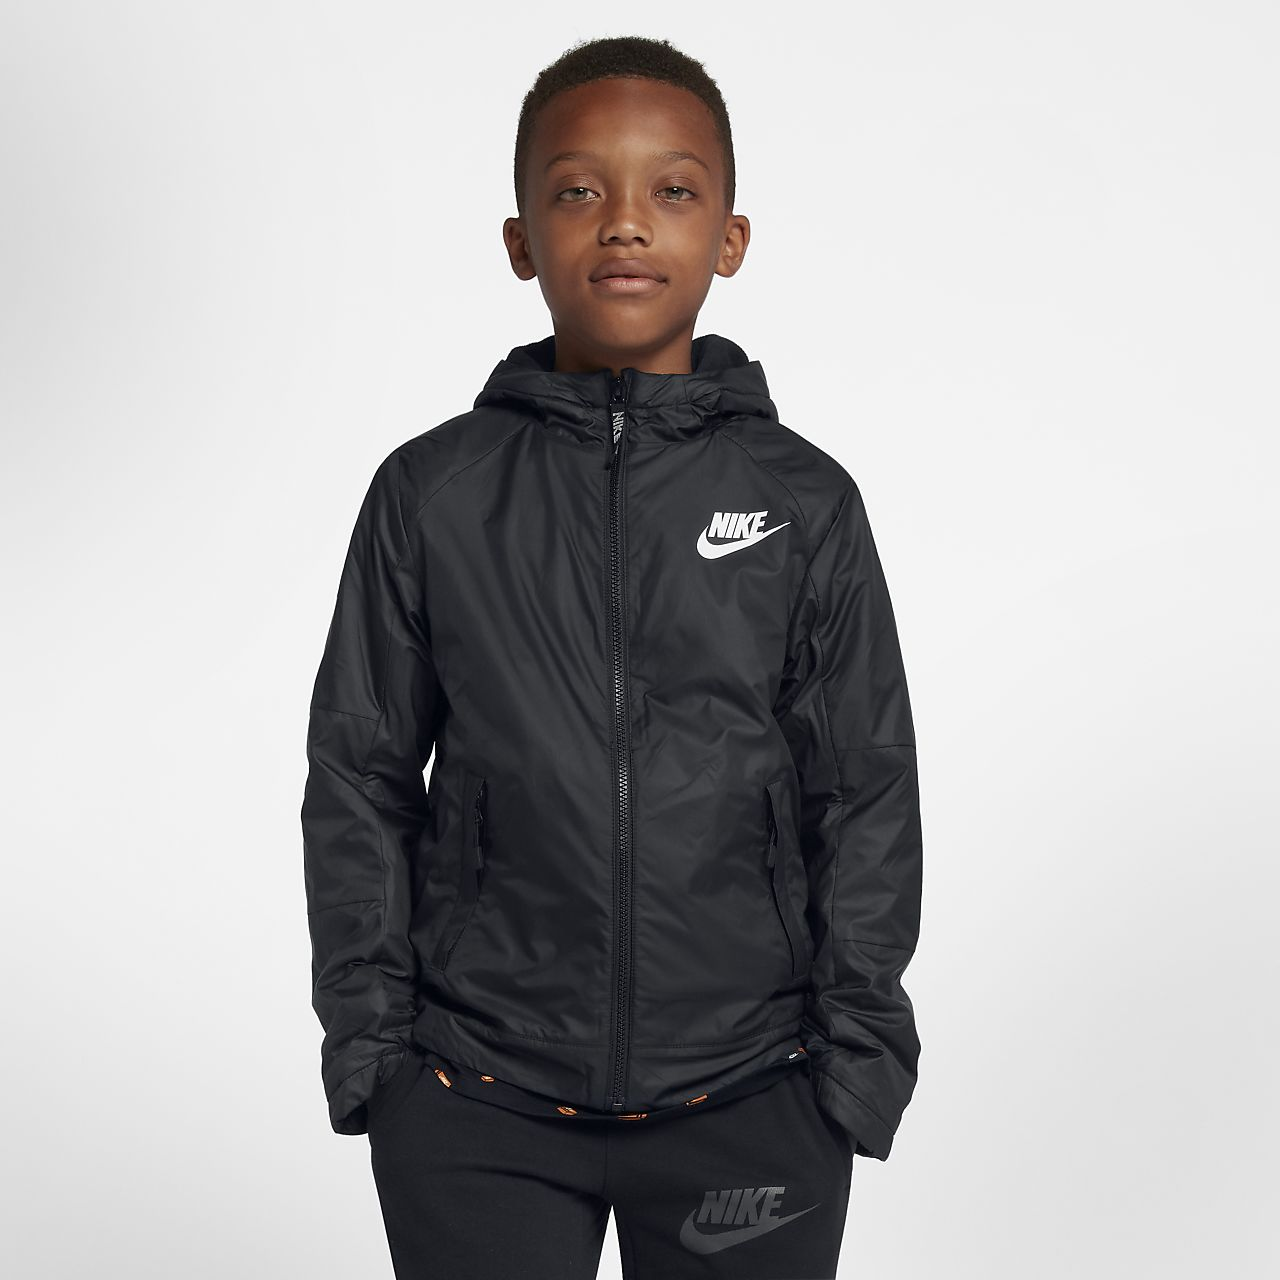 5d3288fb5 Nike Sportswear Older Kids  Jacket. Nike.com GB